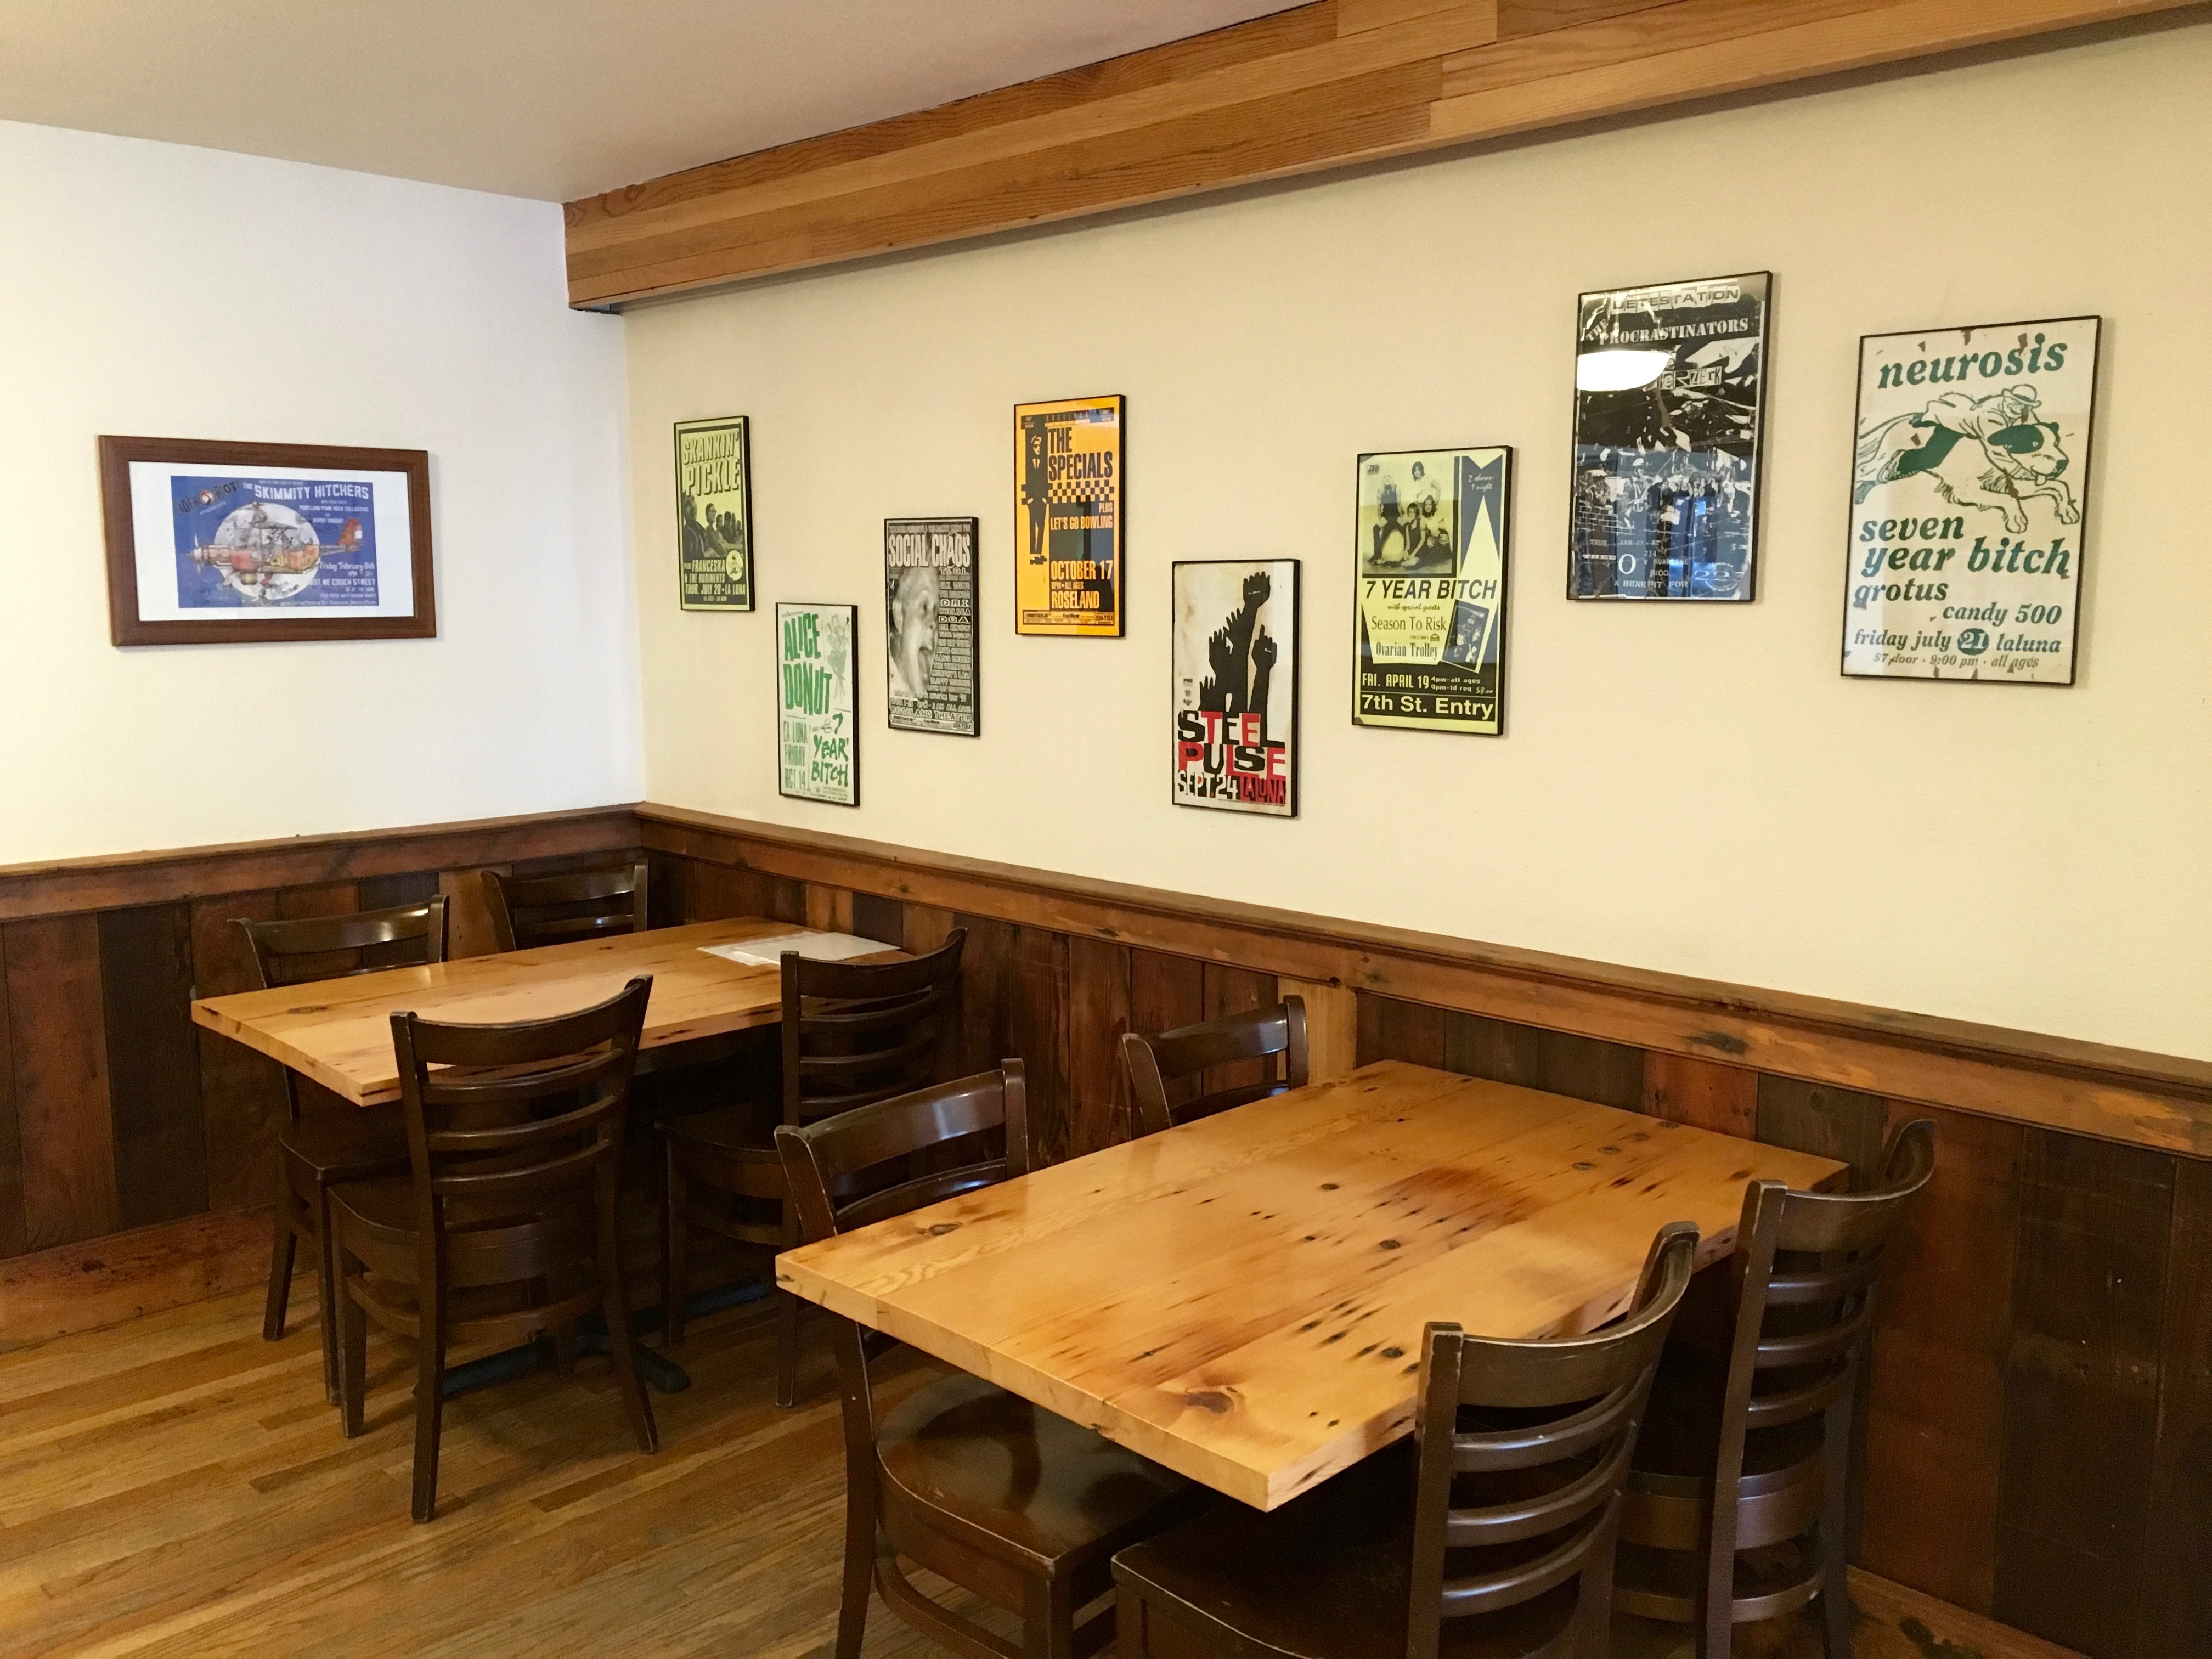 Inside the newly opened Cider Riot! Pub.